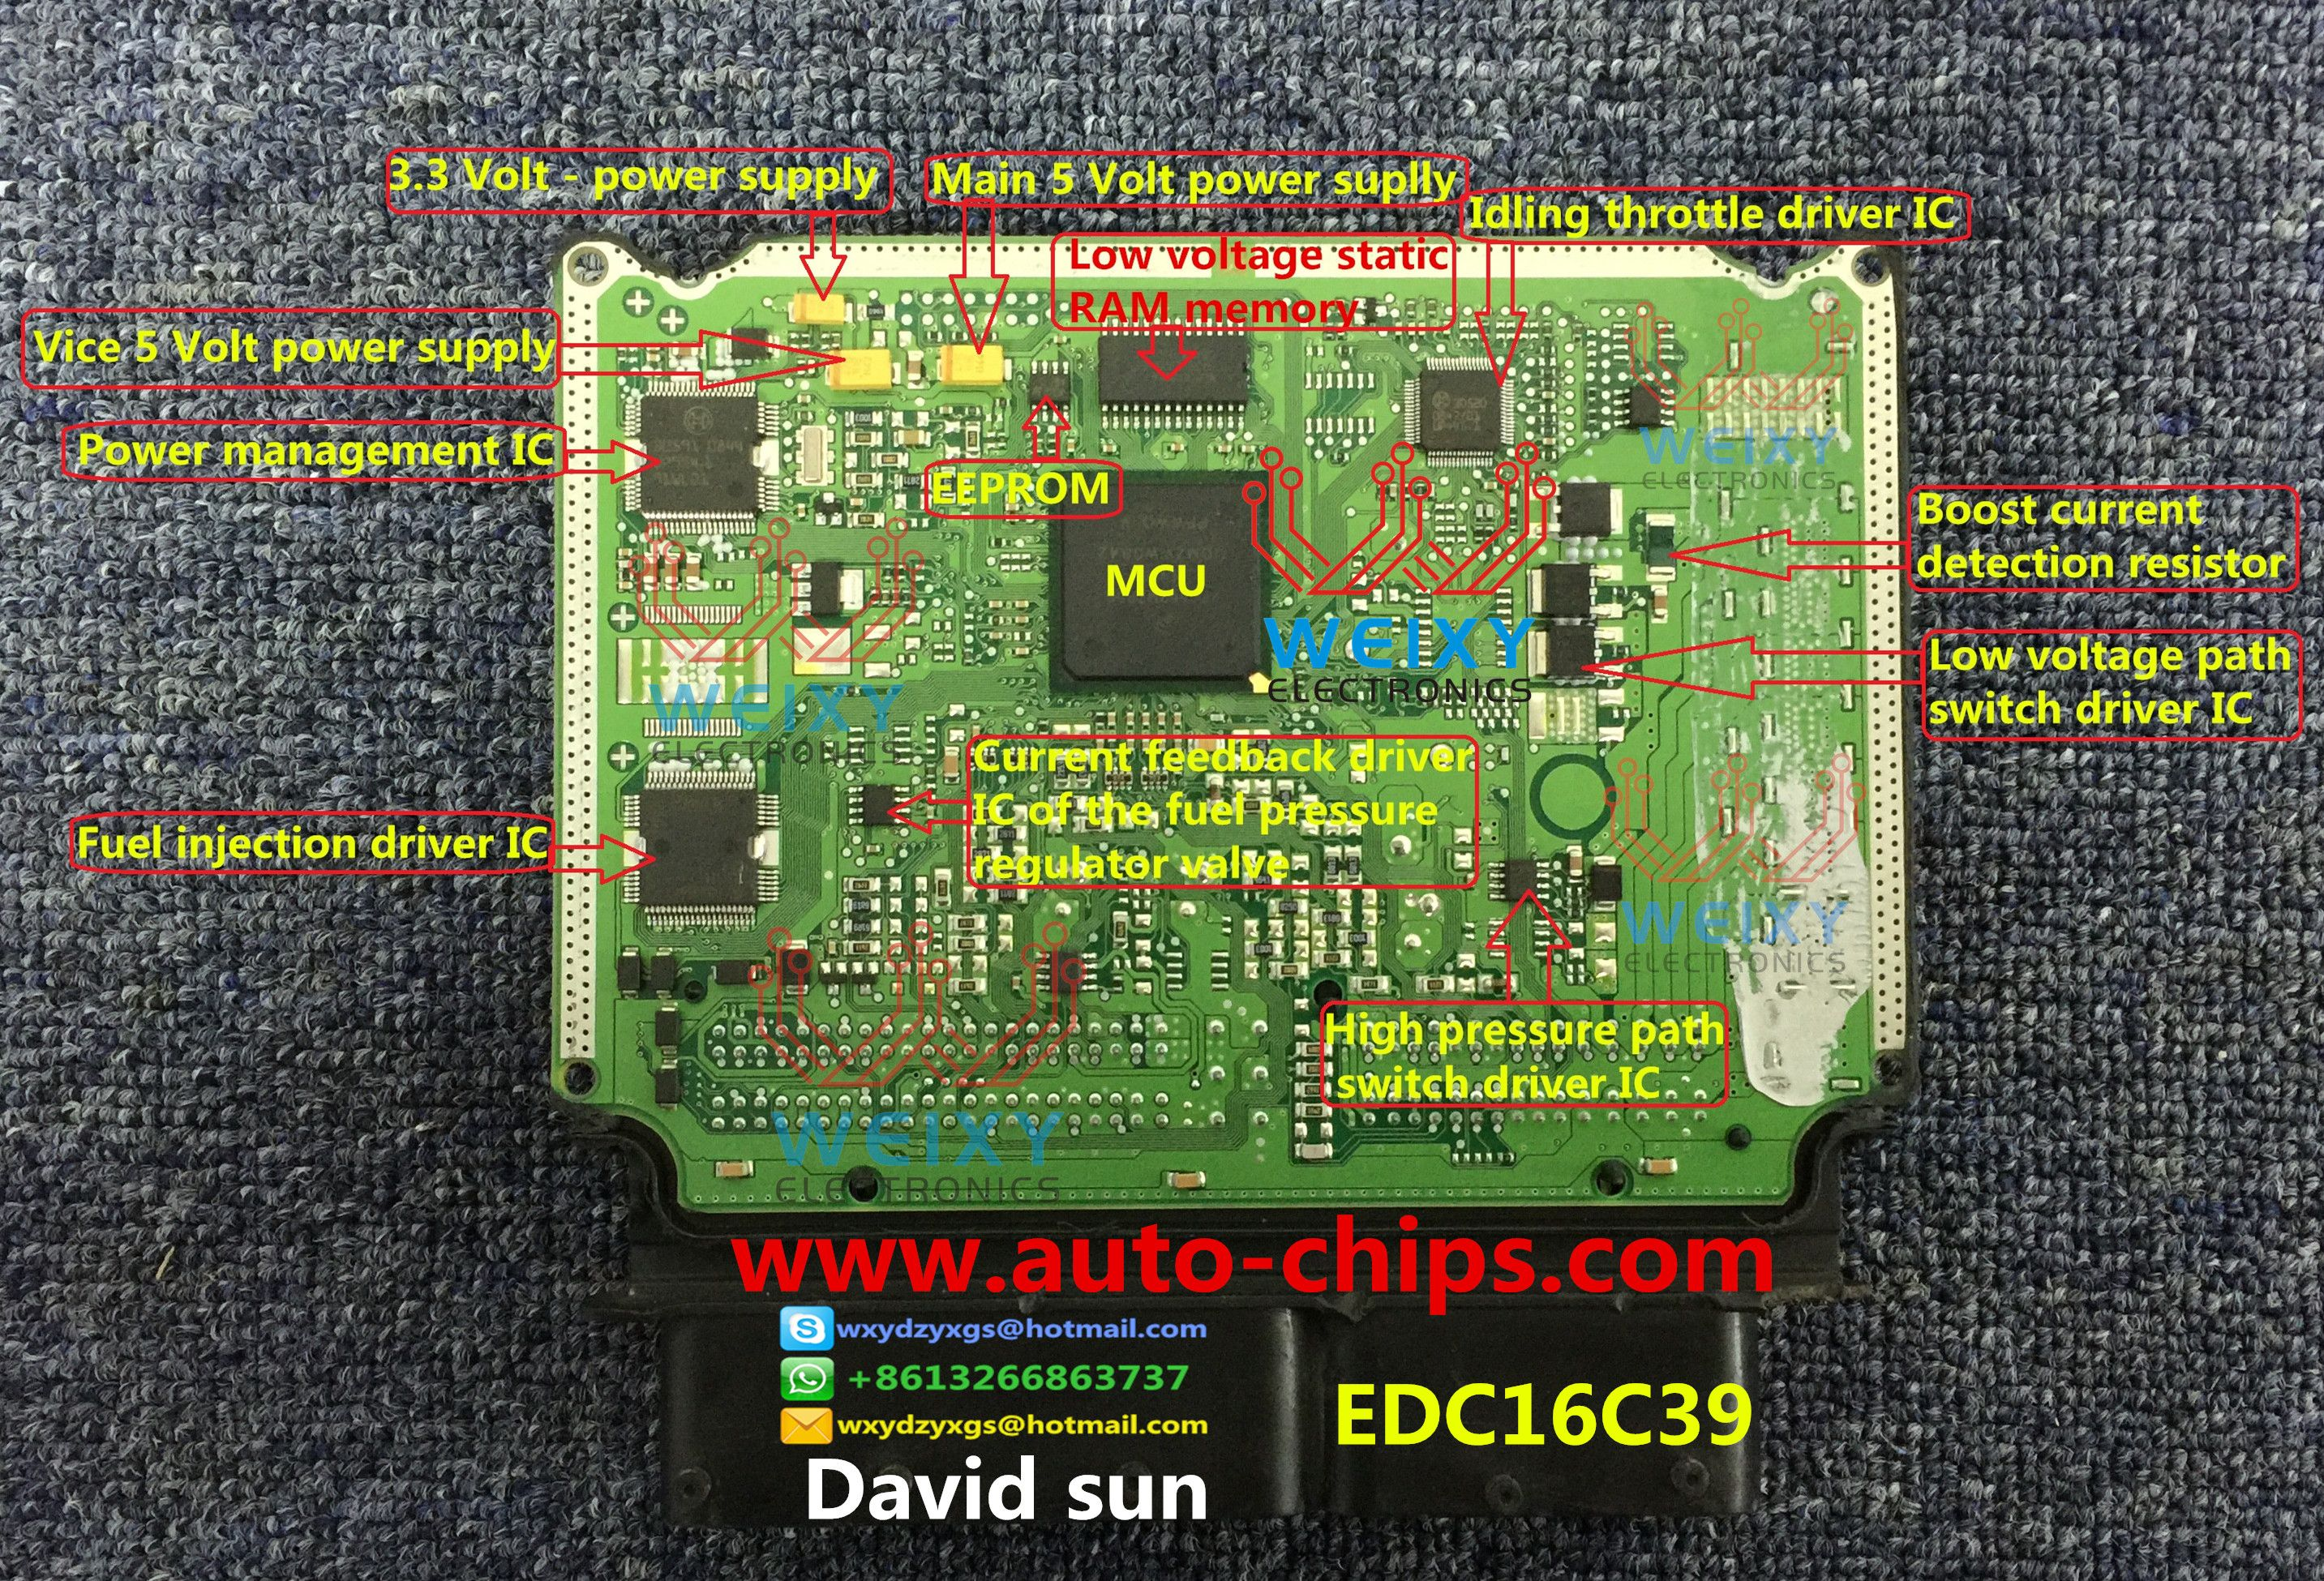 hight resolution of the inner board functional diagram for edc16c39 www auto chips com car ecu